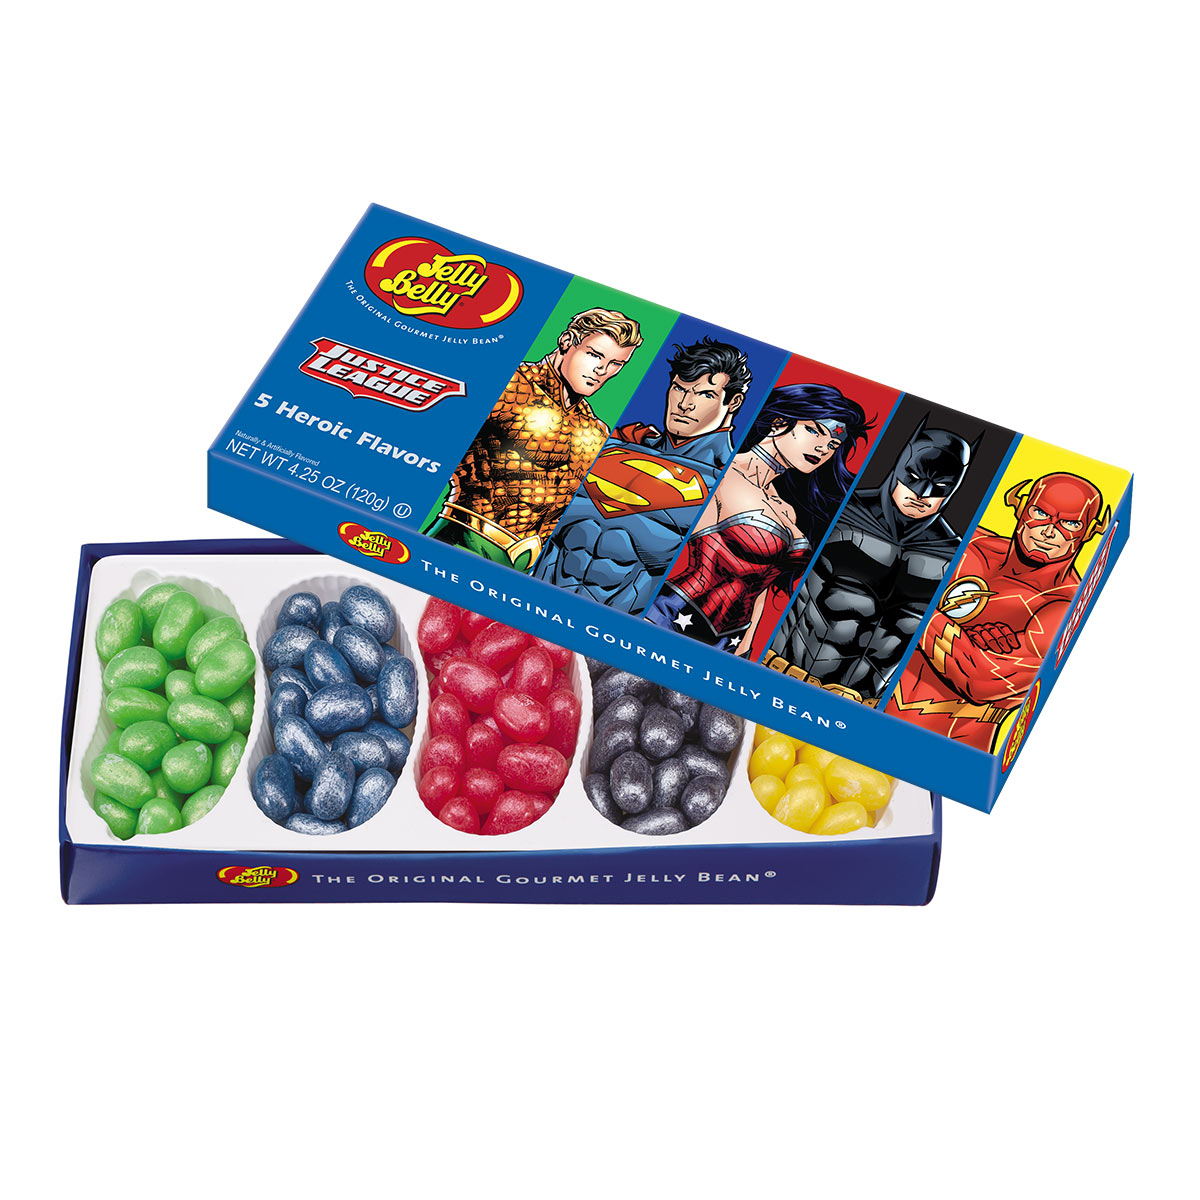 Justice League Jelly Beans 4.25 oz Gift Box